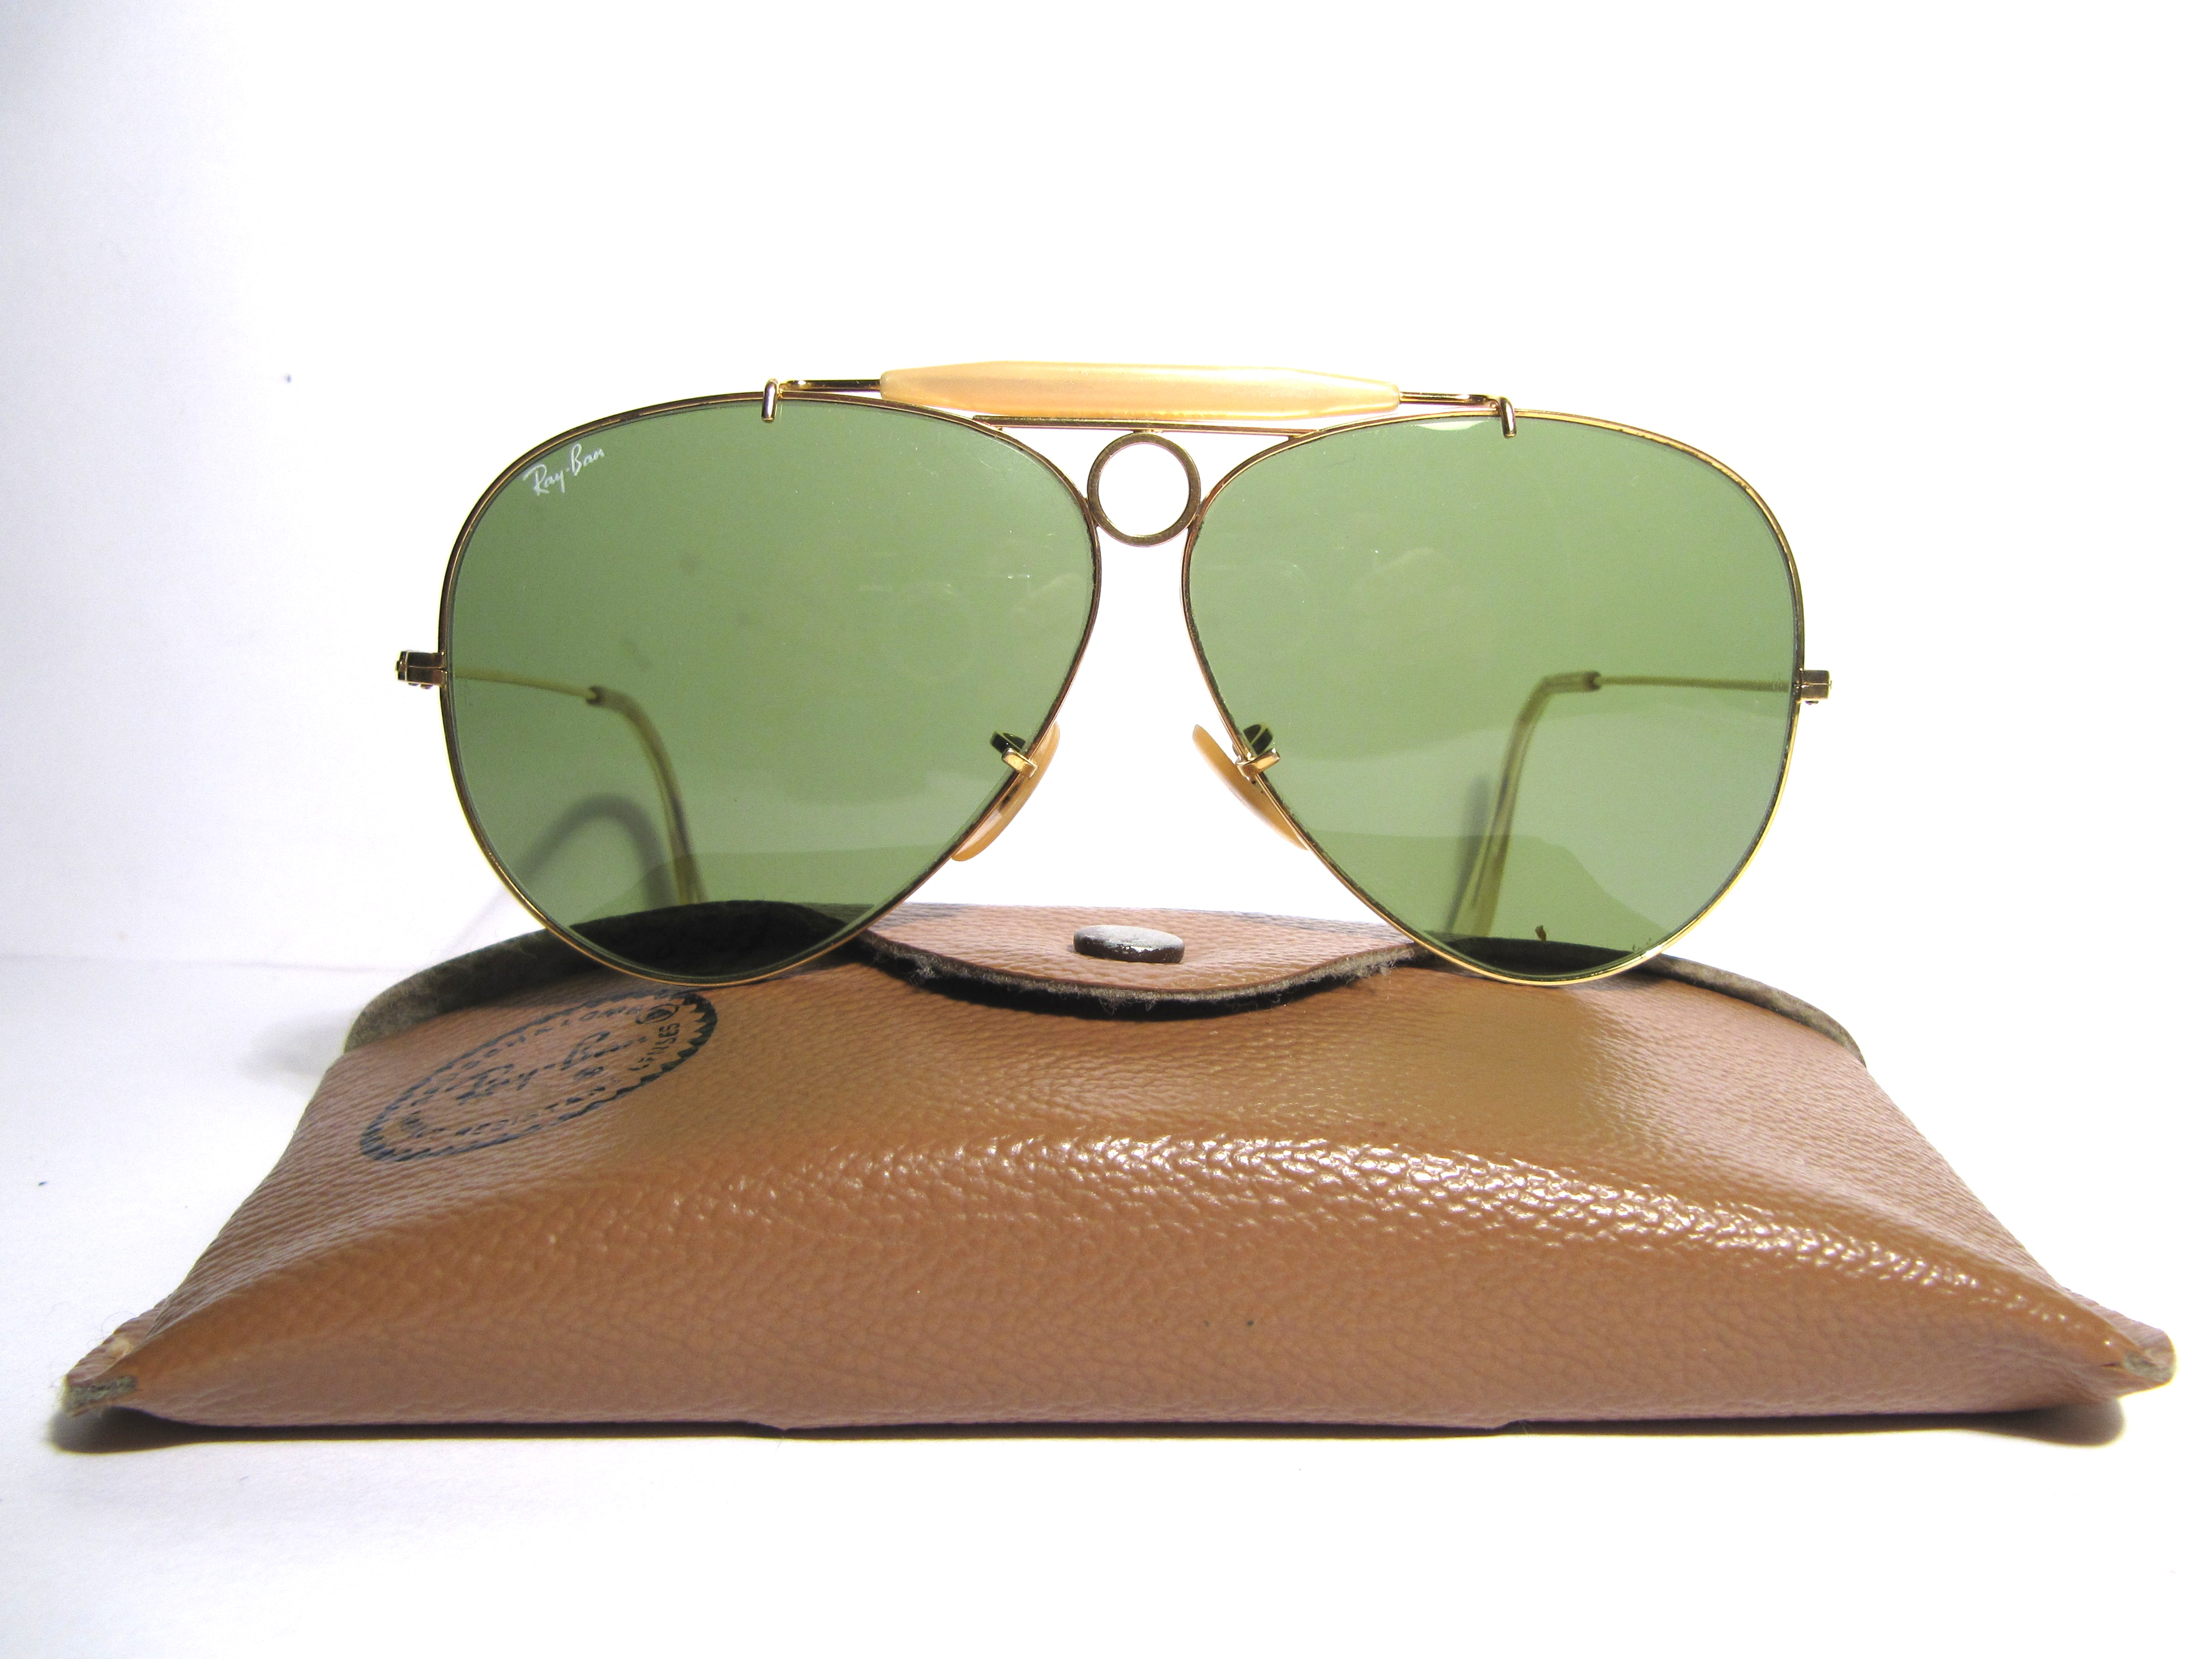 usa ray ban sunglasses  ray ban shooter usa. ray ban shooter, 1980s vintage sunglasses made in usa